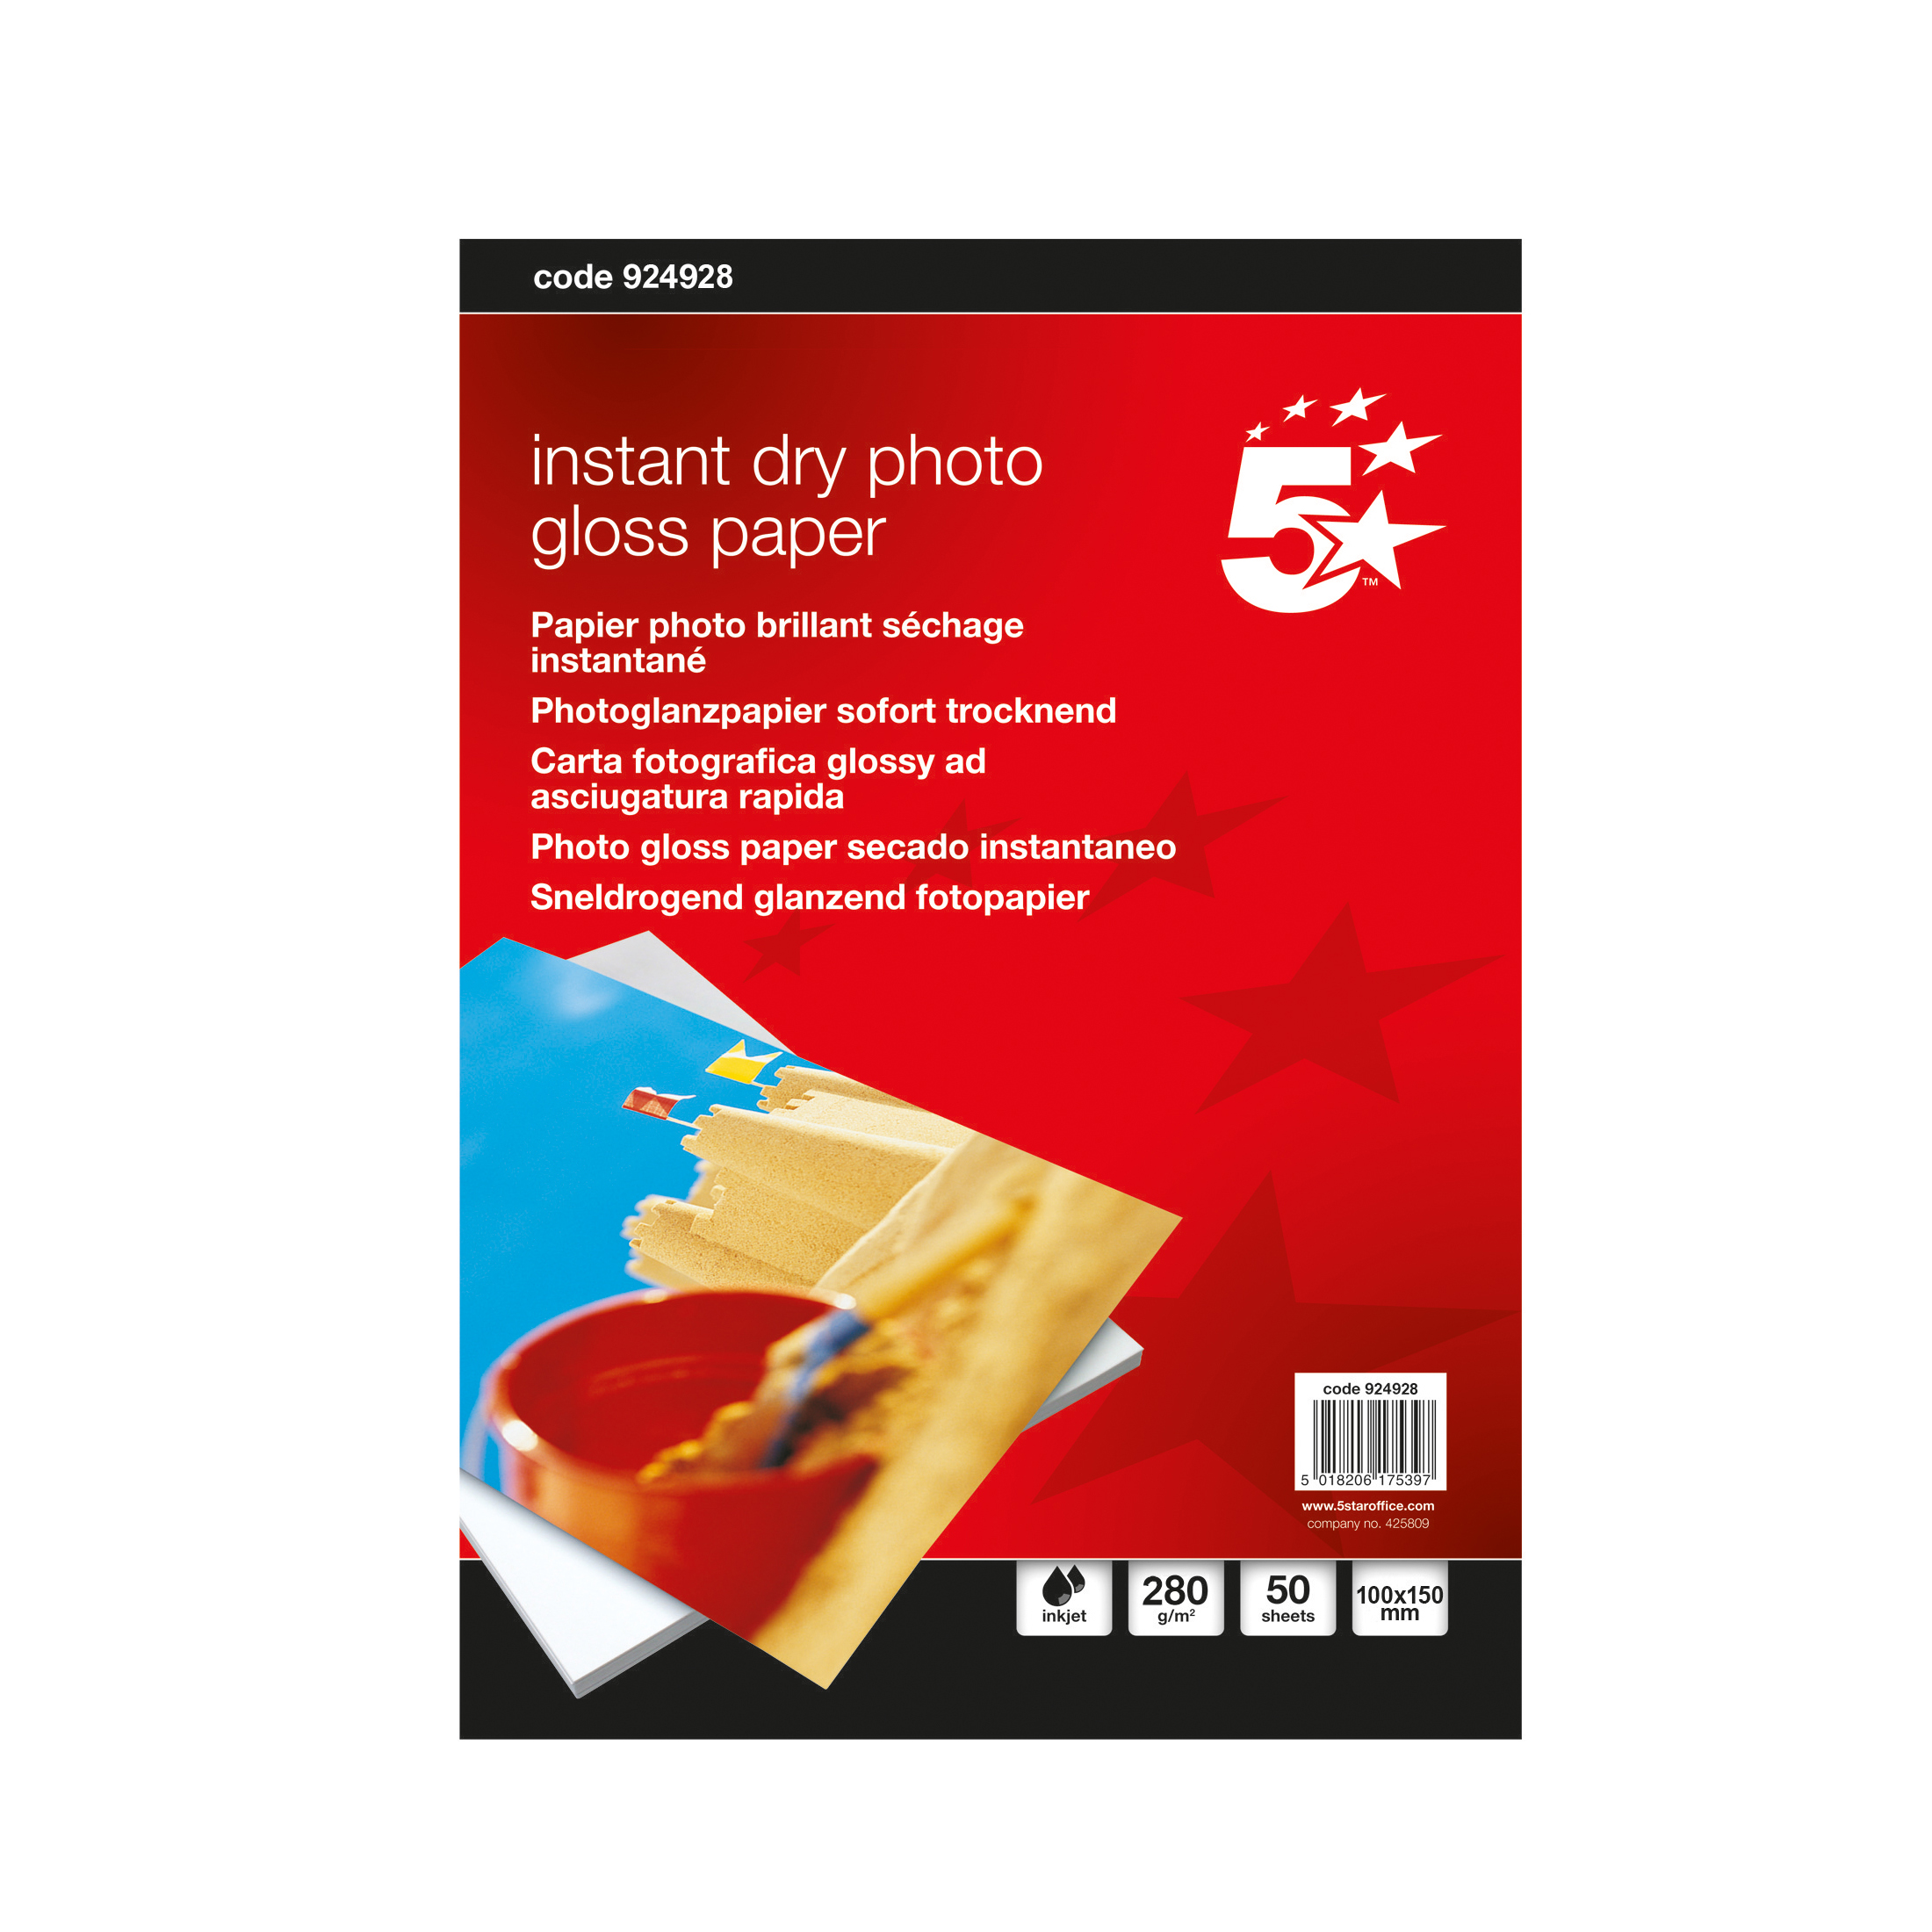 5 Star Premier Paper Inkjet Photo Gloss Fast Drying 260gsm 100x150mm Pack 50